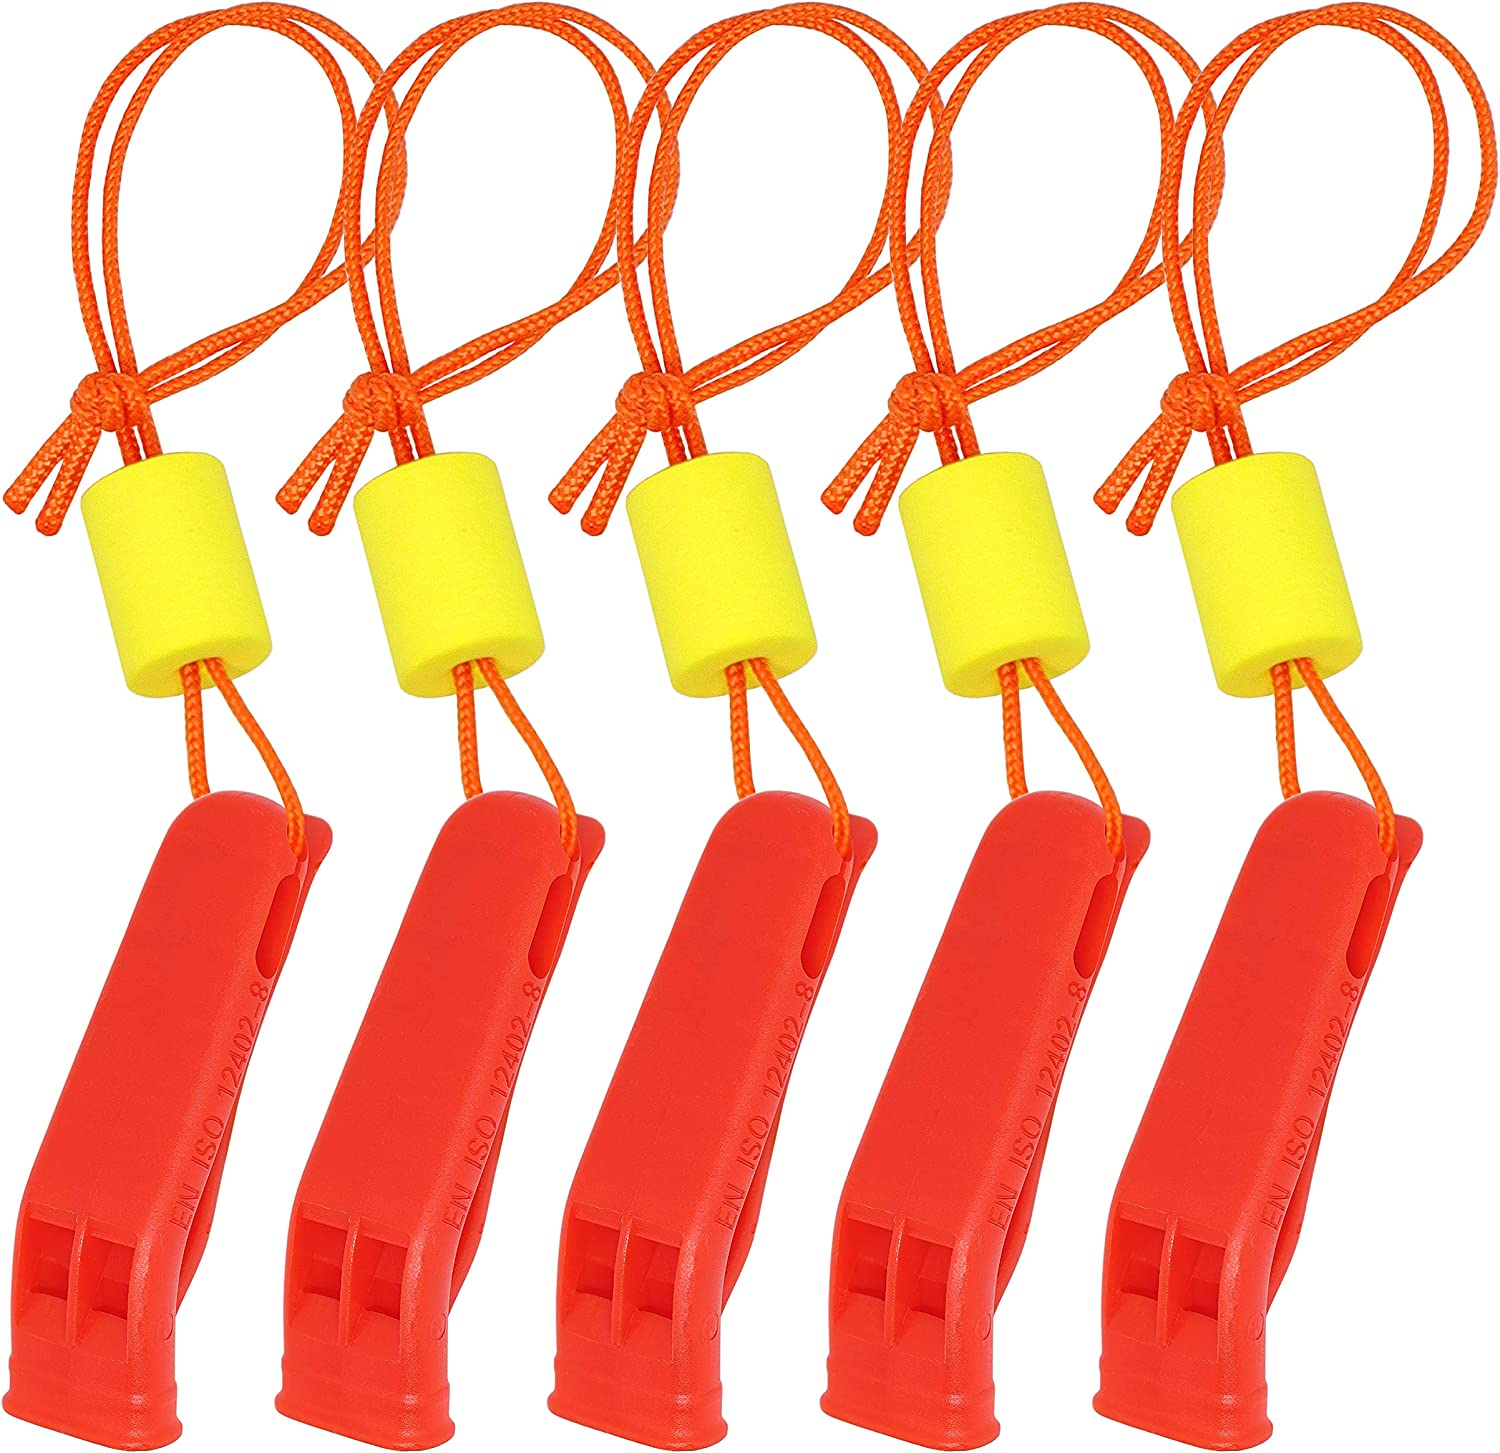 5x Safety Emergency Whistle Outdoor Camping Hiking Boat Survival Distress SK